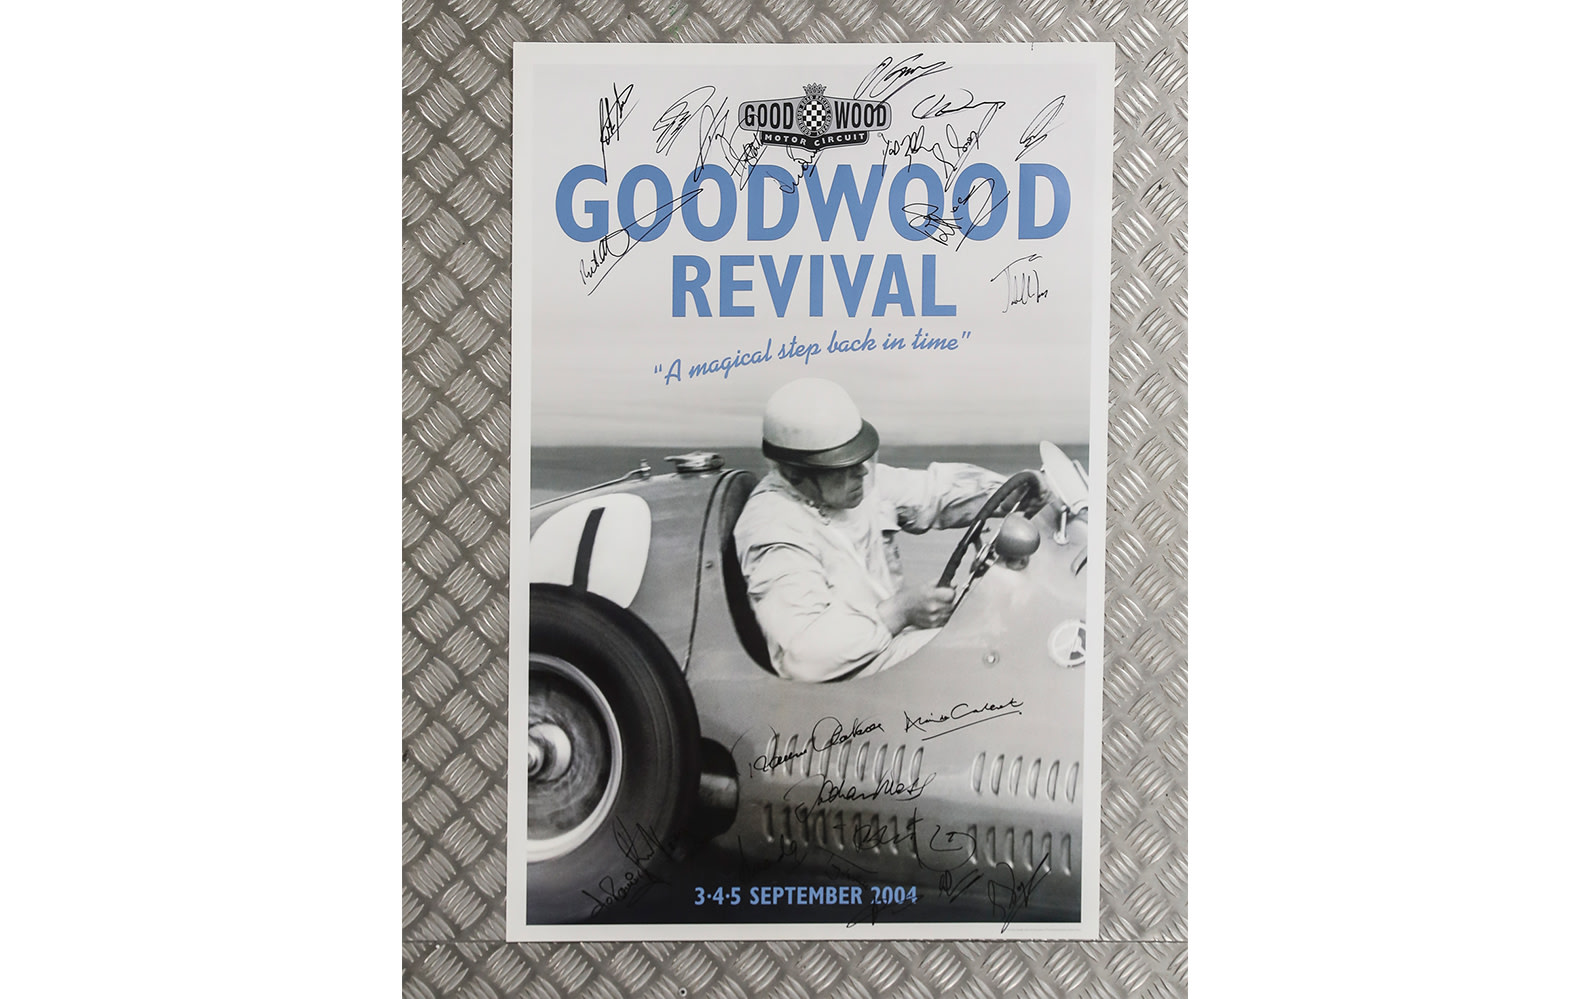 Signed 2004 Goodwood Revival Poster